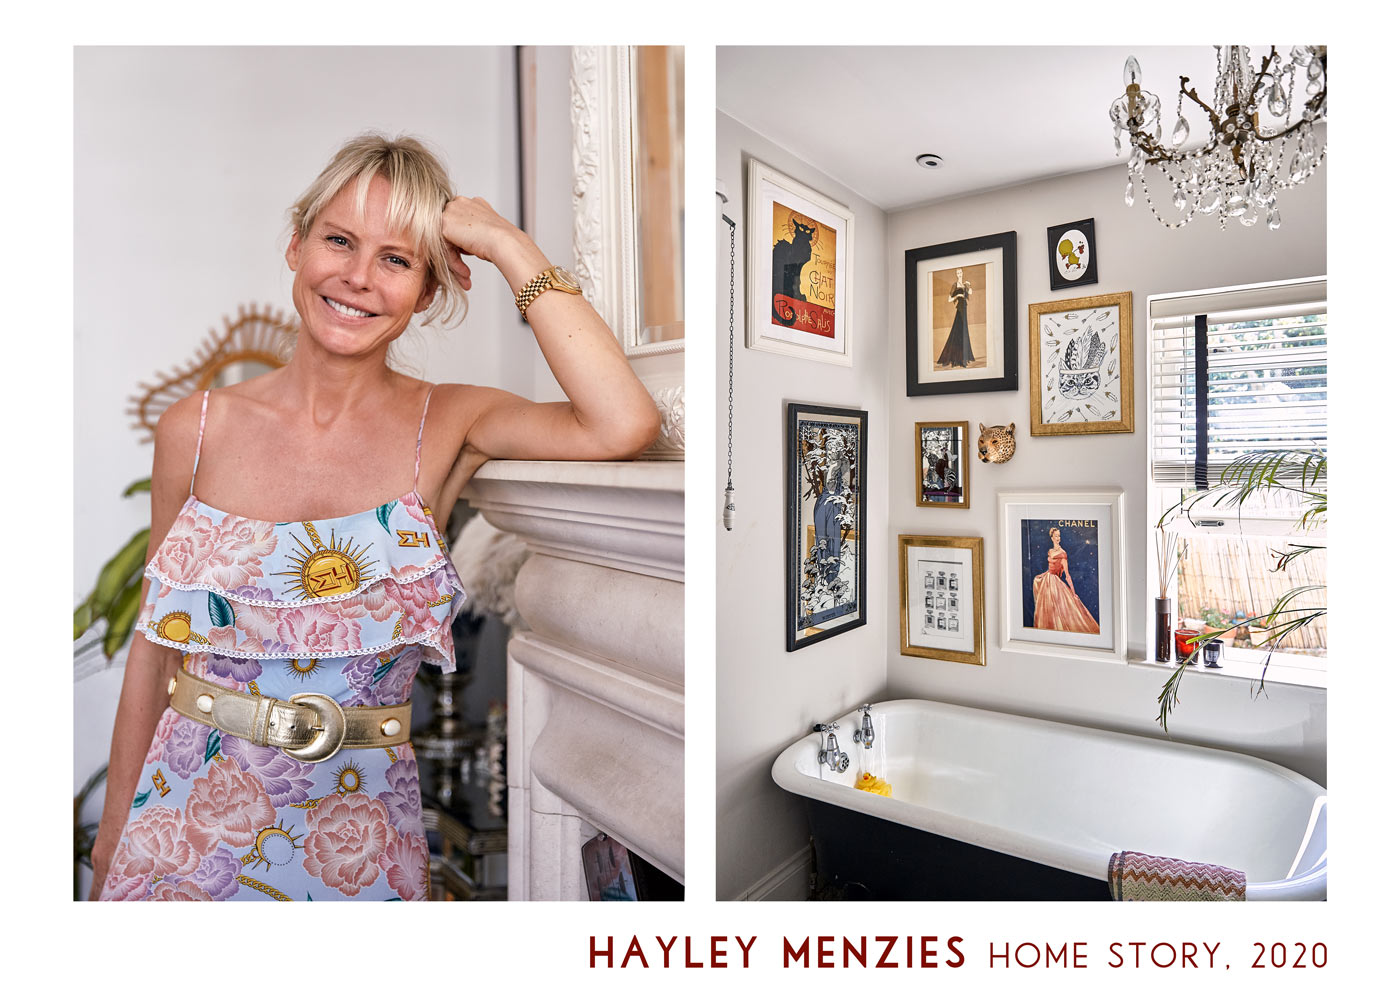 Hayley Menzies – Home Story